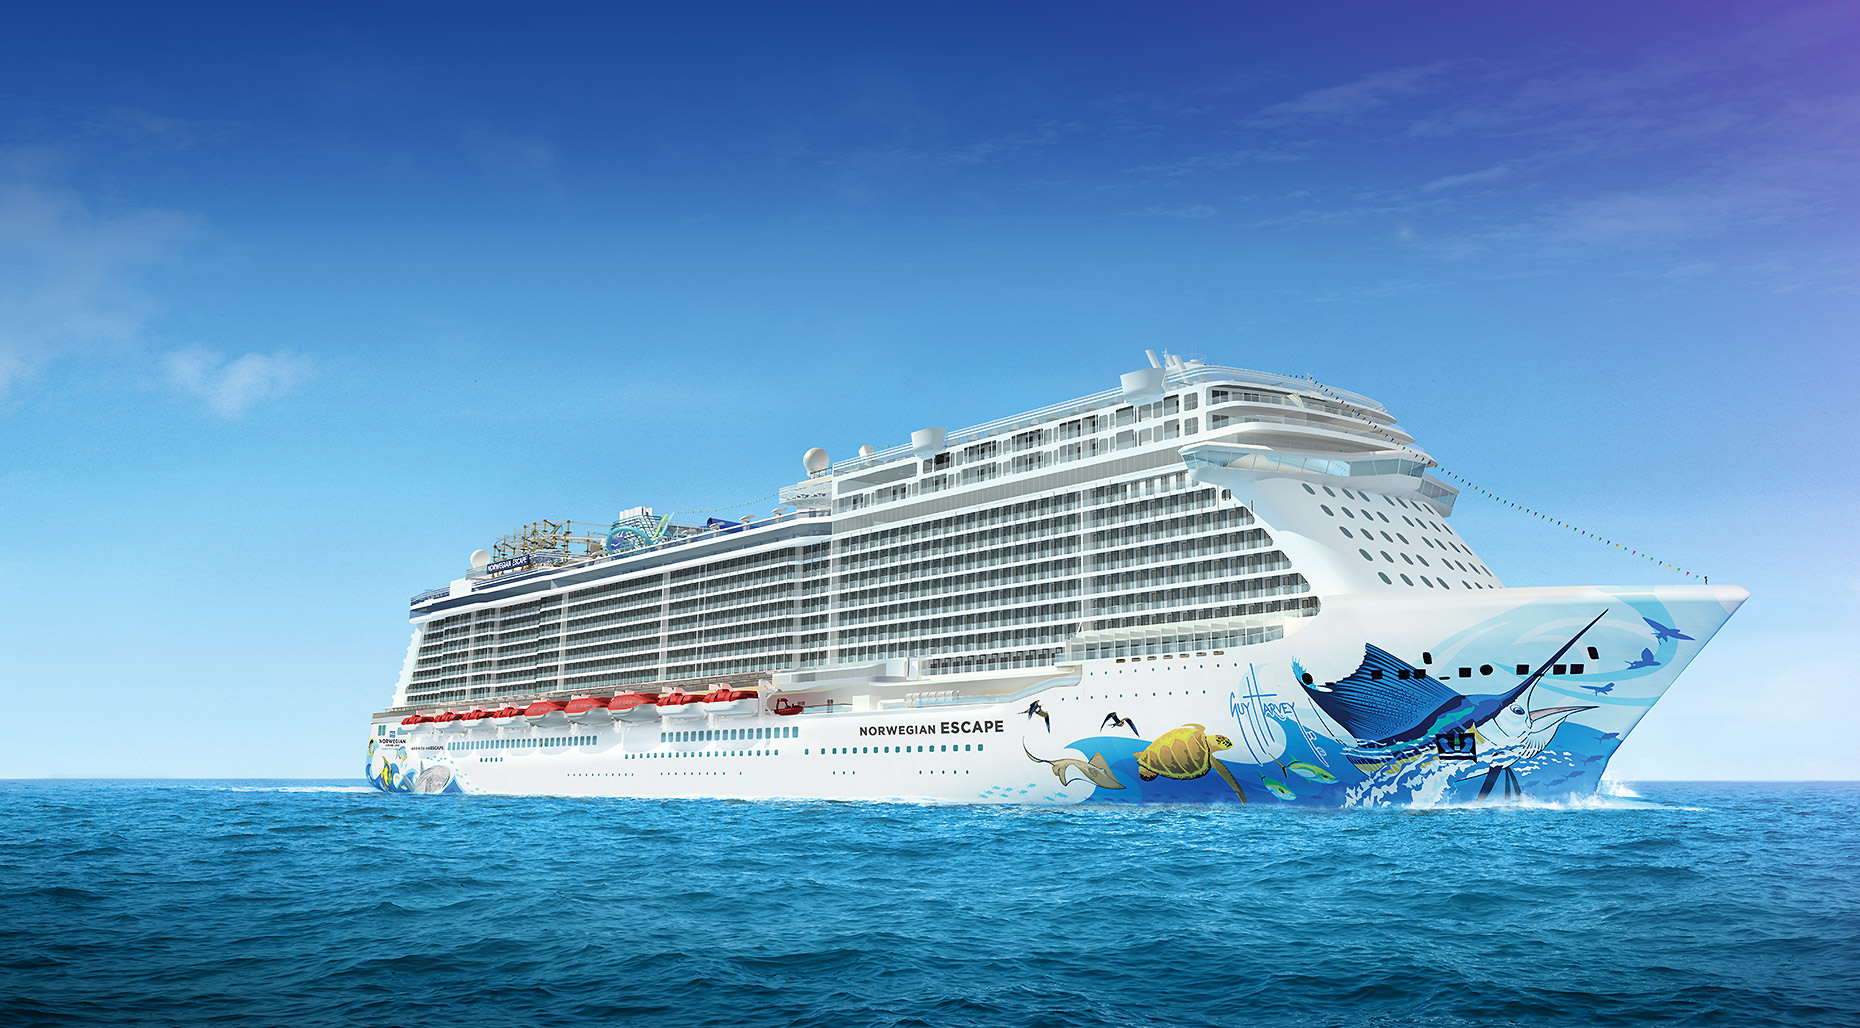 Norwegian Bliss will be a sister to Norwegian Escape, the first Breakaway Plus-class vessel due to enter service next month. Illustration courtesy of Norwegian Cruise Line